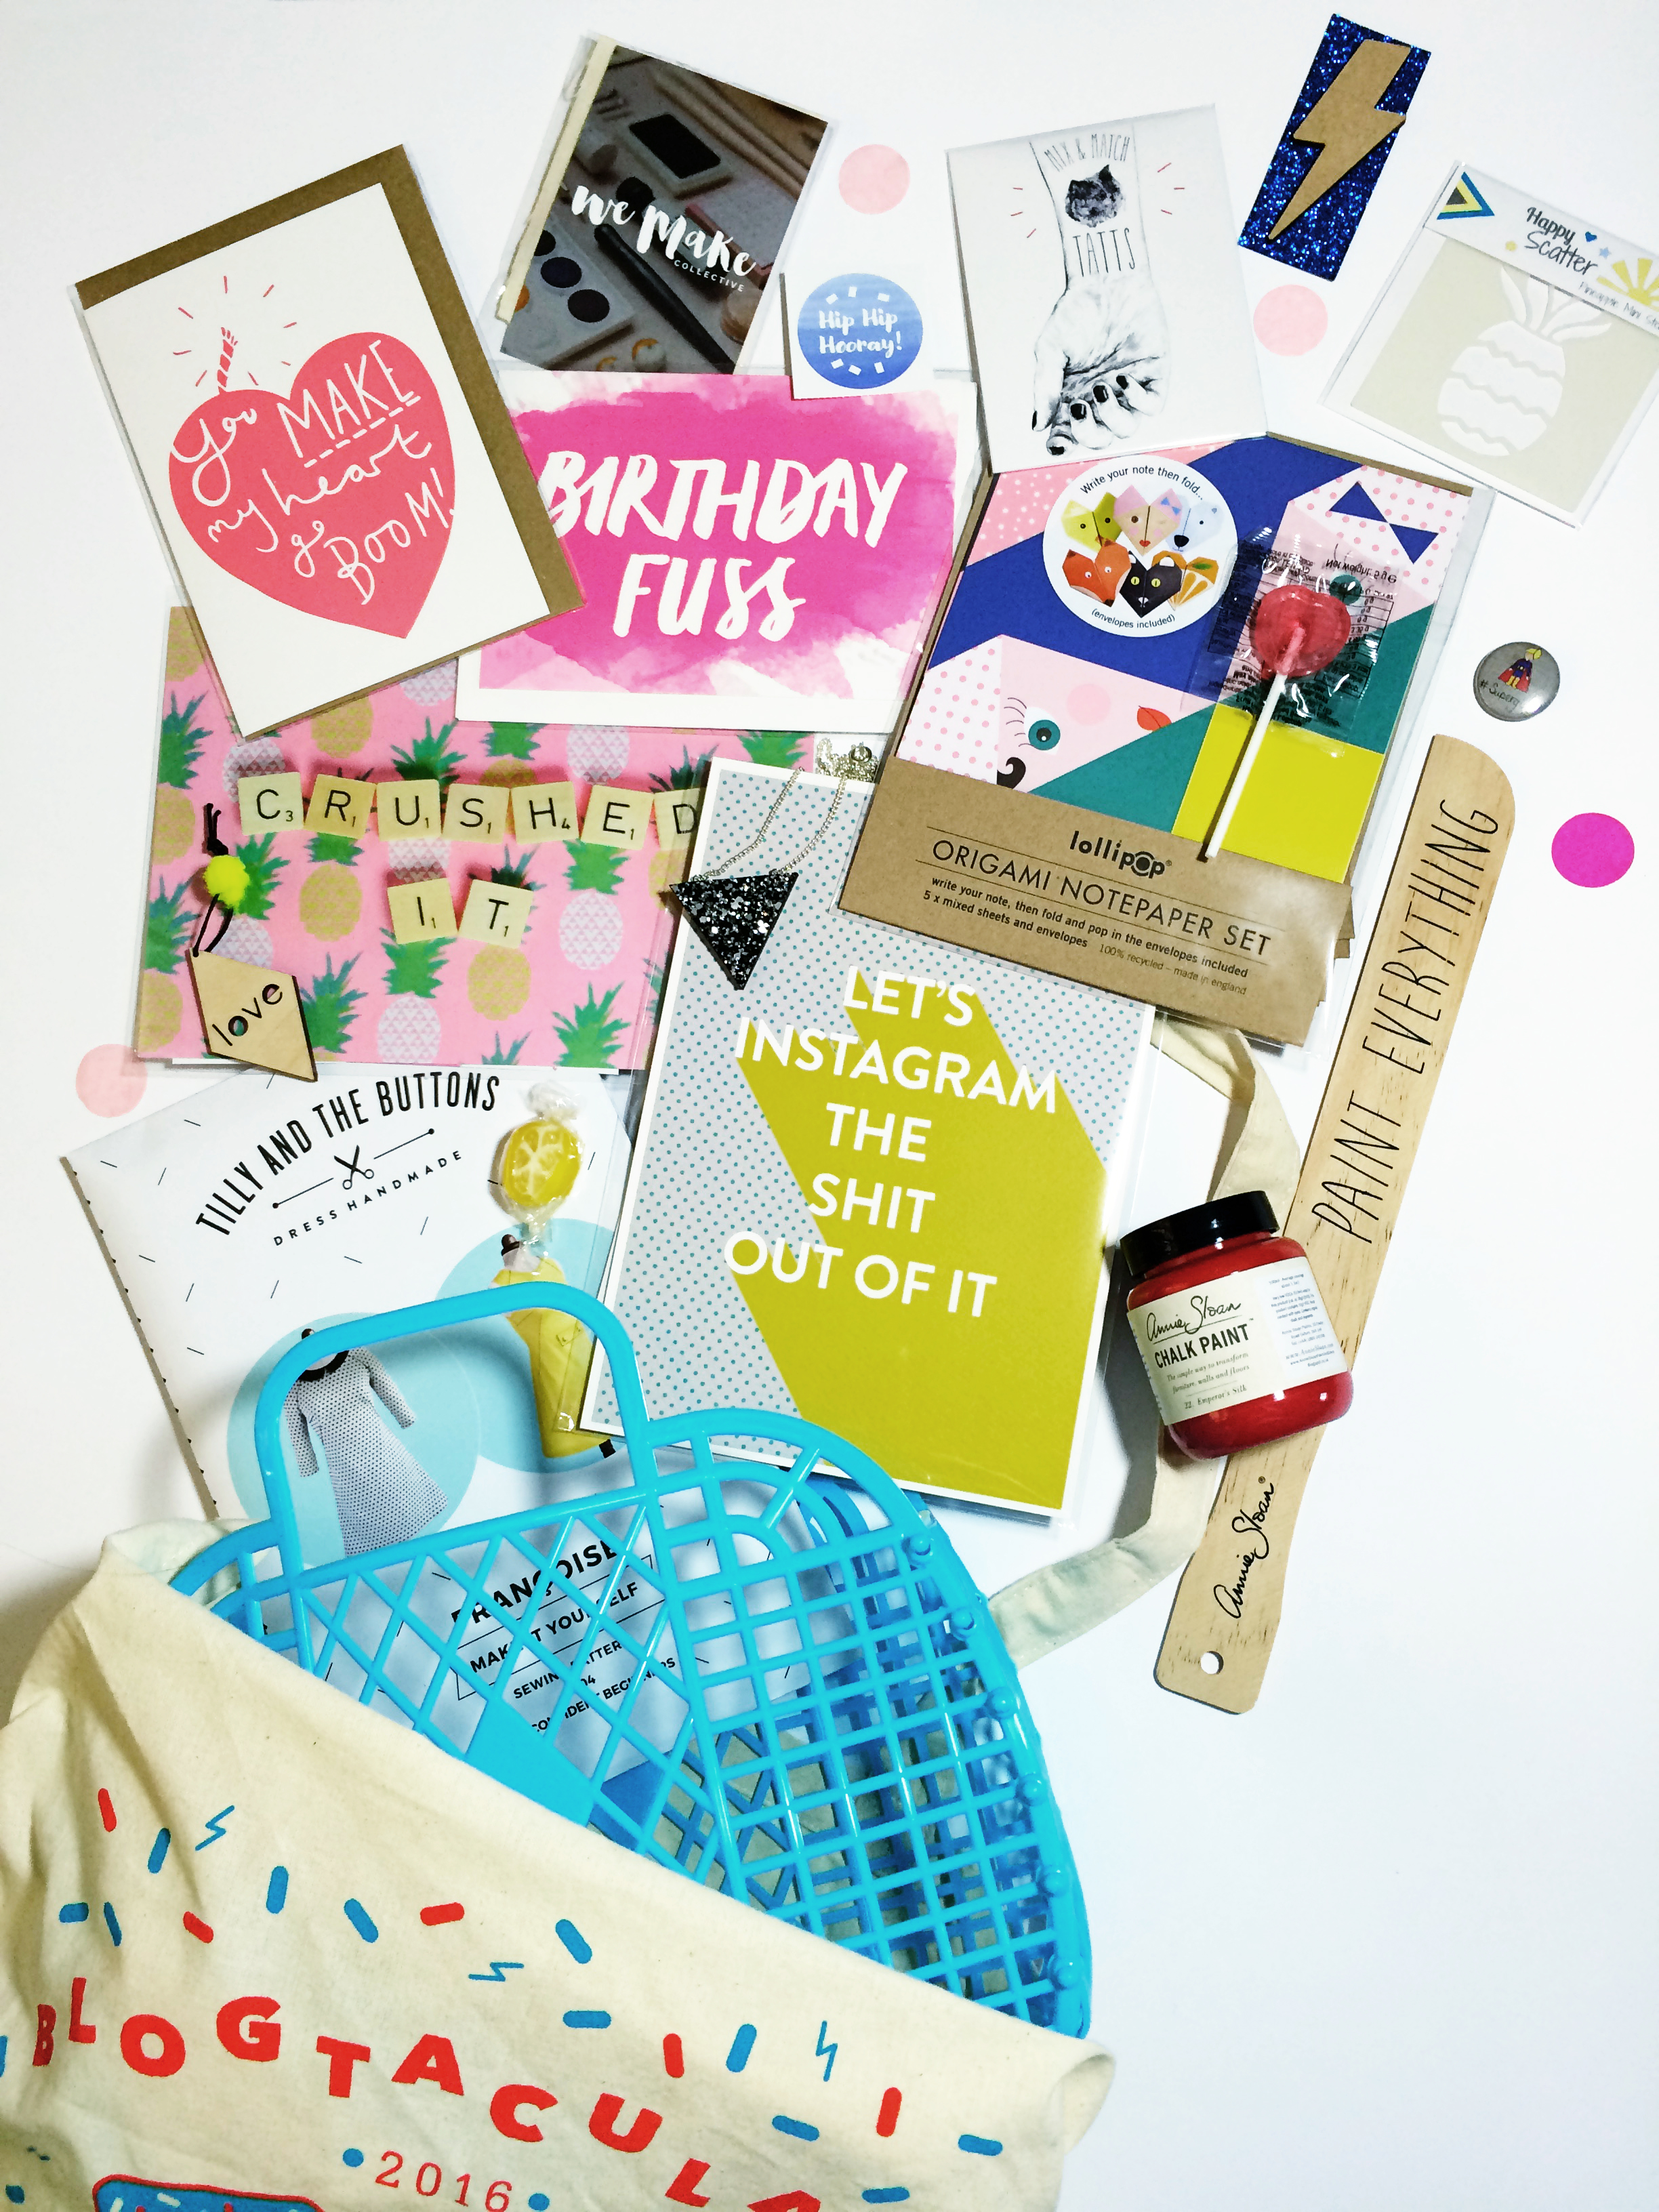 A peek into my 2016 Blogtacular goody bag